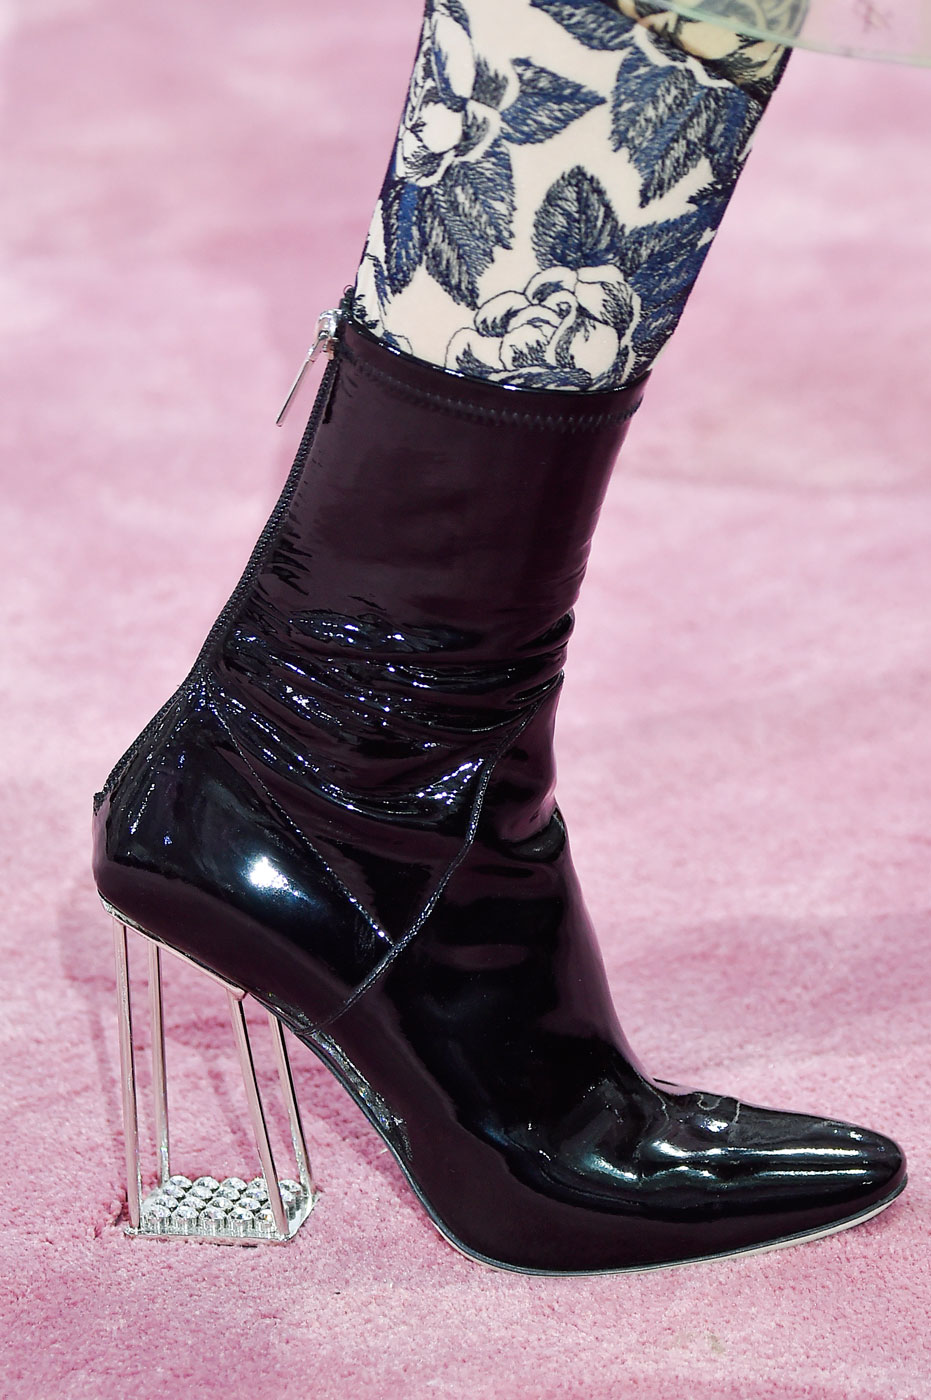 Christian-Dior-fashion-runway-show-close-ups-haute-couture-paris-spring-summer-2015-the-impression-077